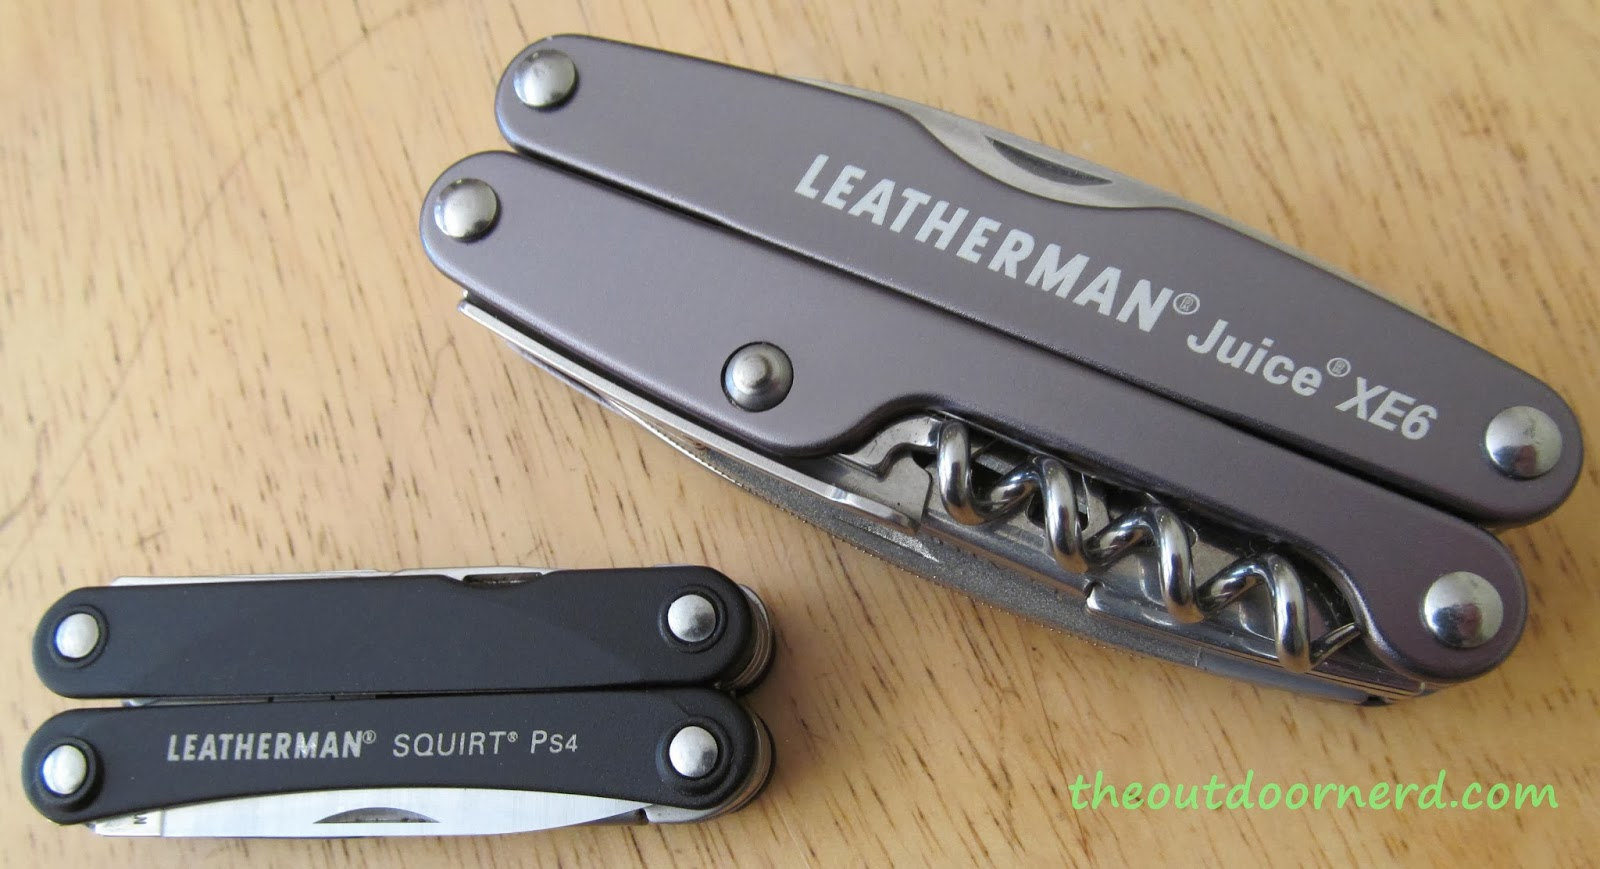 leather man squirt Check out Leatherman Squirt PS4 .